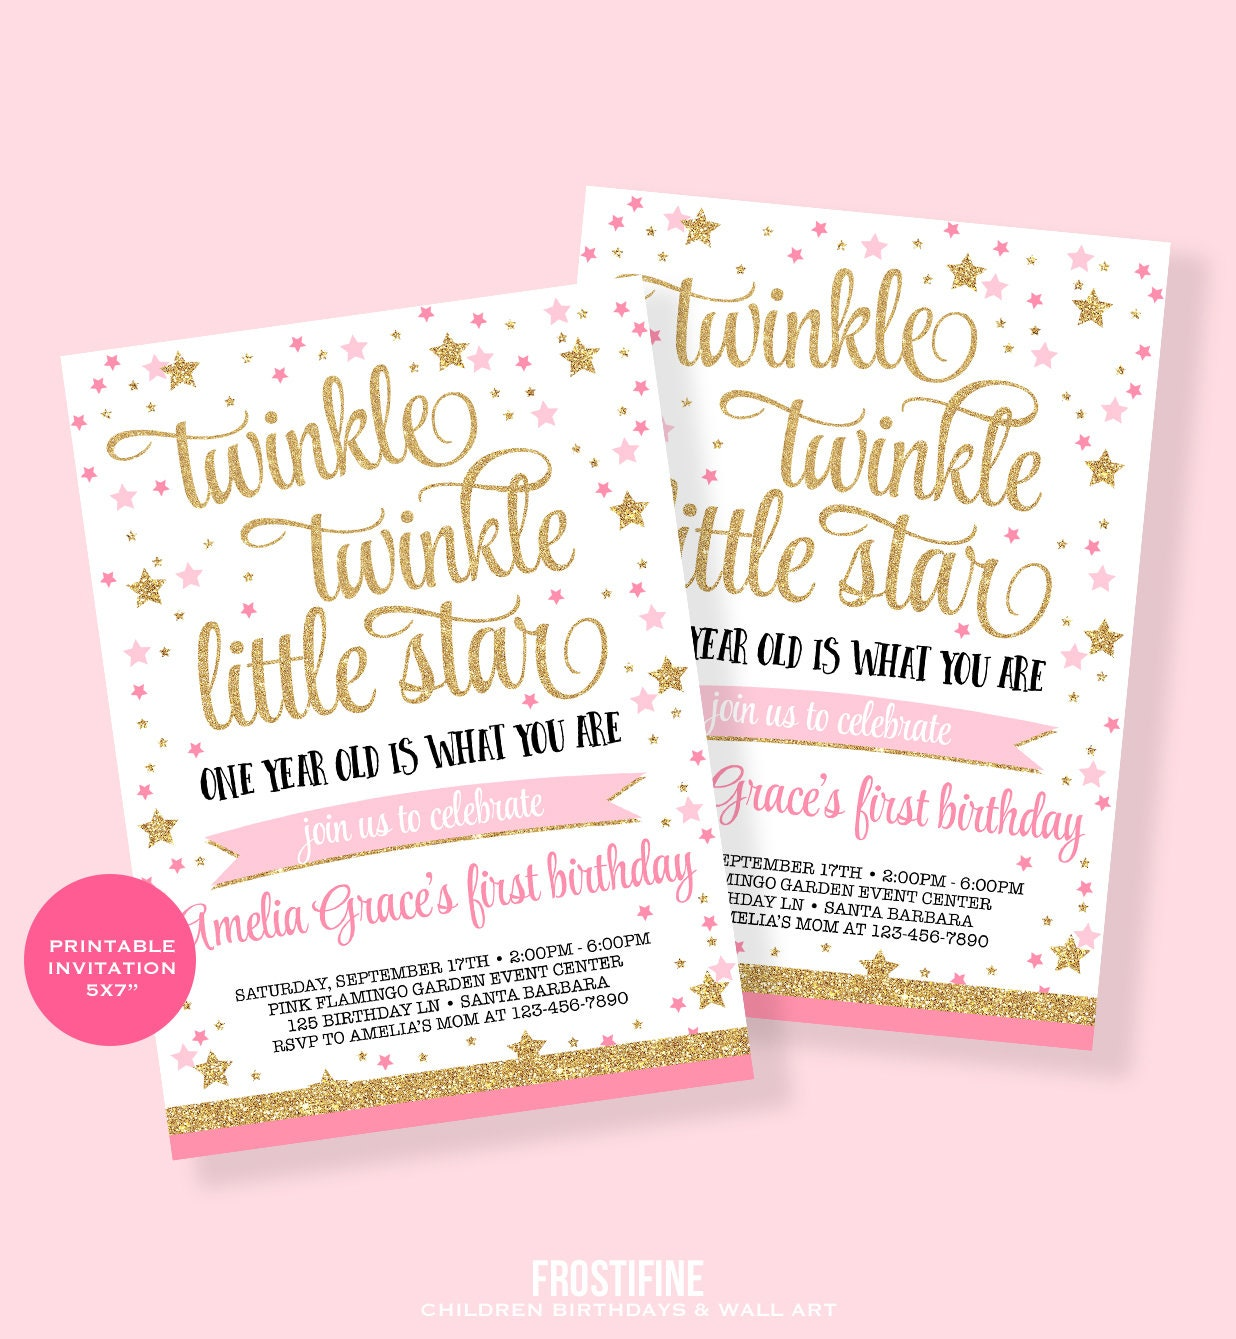 Twinkle twinkle little star first birthday invitation Pink | Etsy